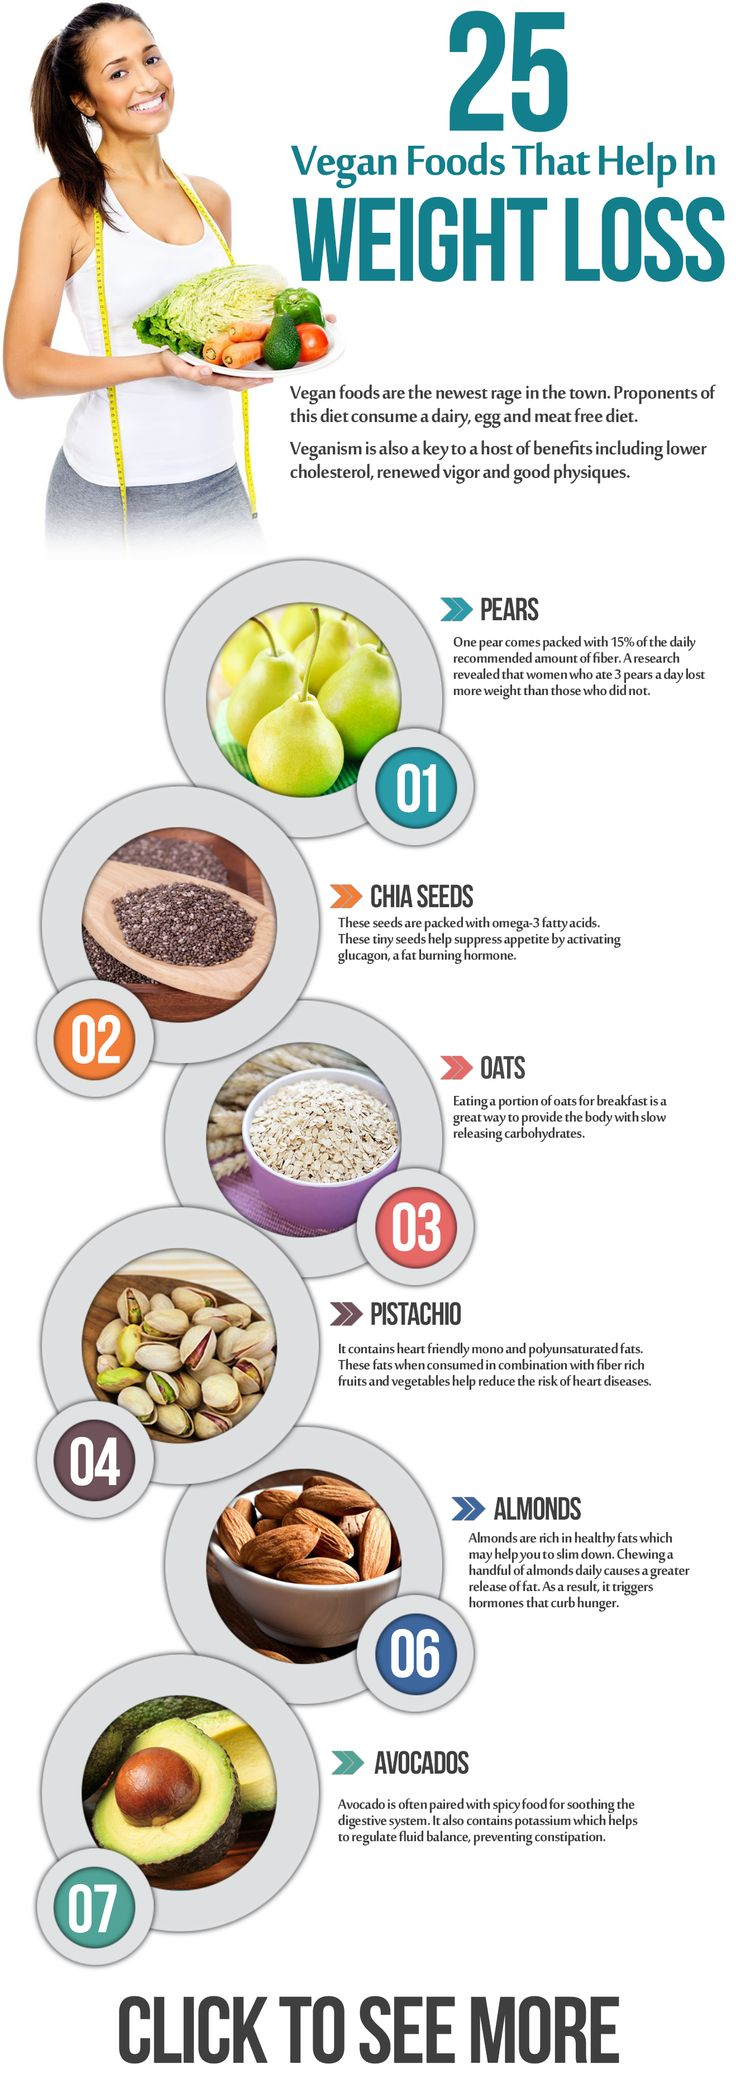 Top 25 Vegan Foods That Help In Weight Loss : Here's a list of top 25 foods to include in your healthy vegan weight loss plan: